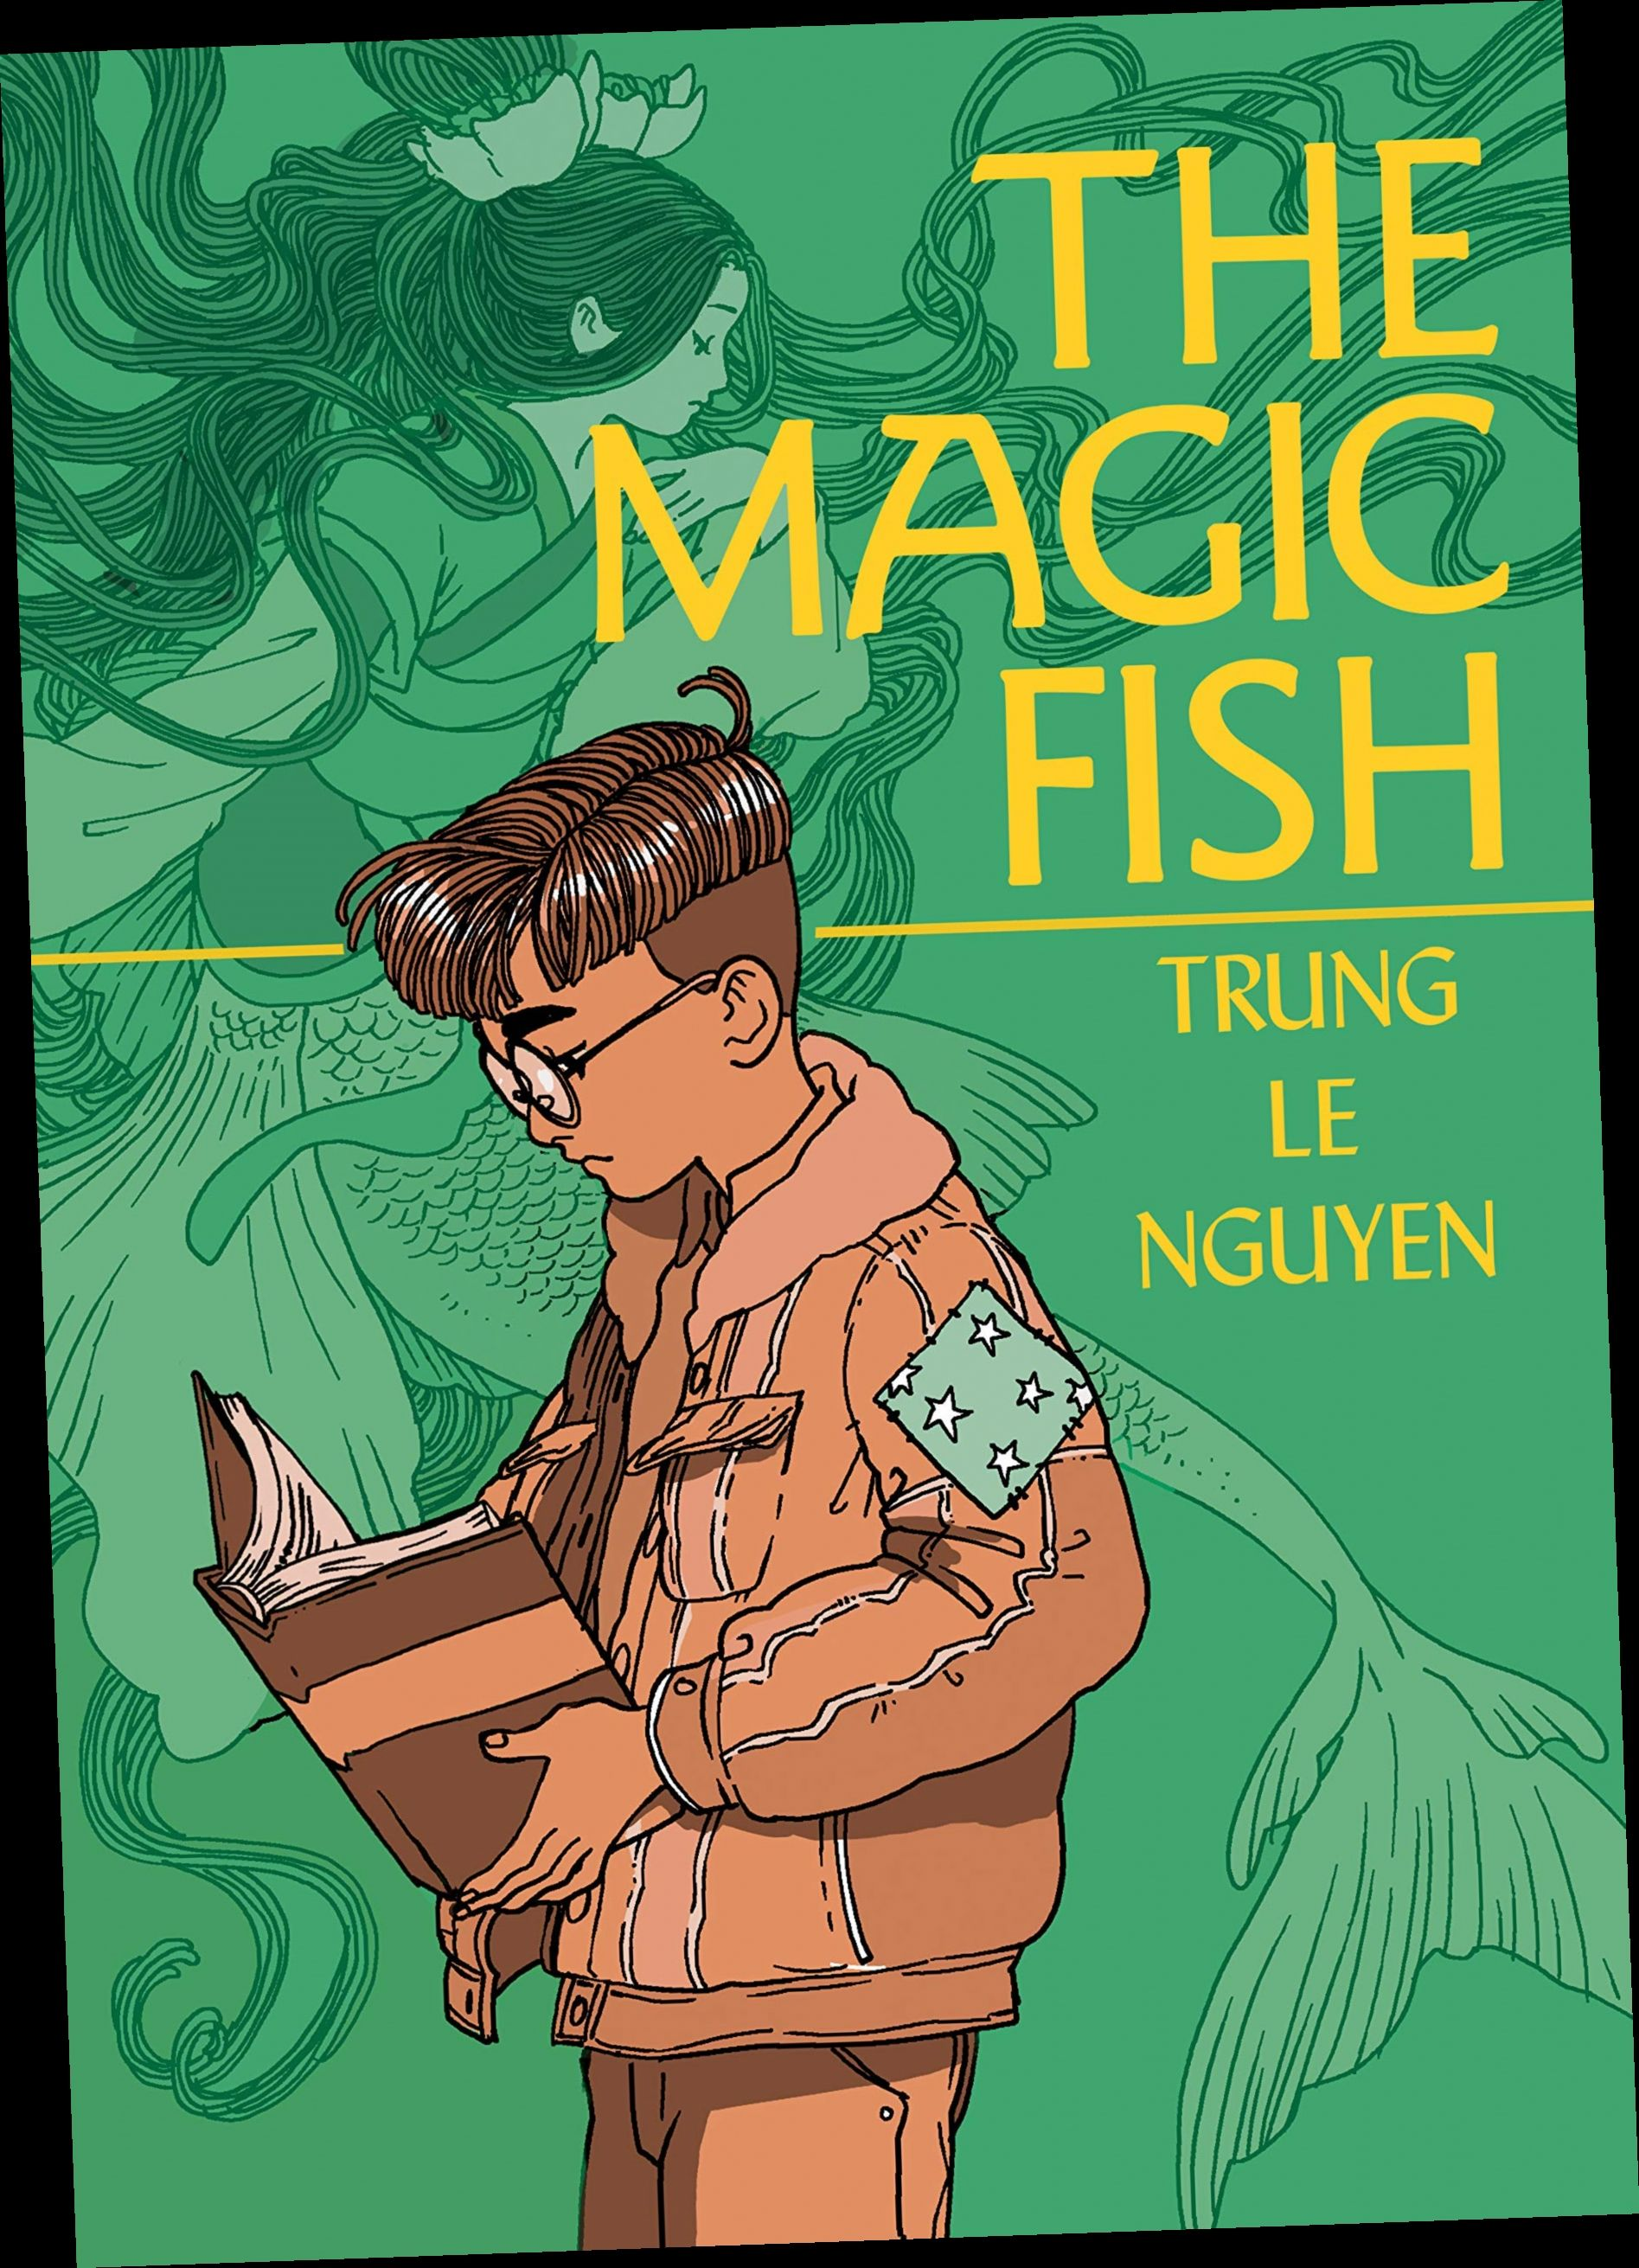 Ebook Pdf Epub Download The Magic Fish By Trung Le Nguyen Graphic Novel Books Comic Book Artists